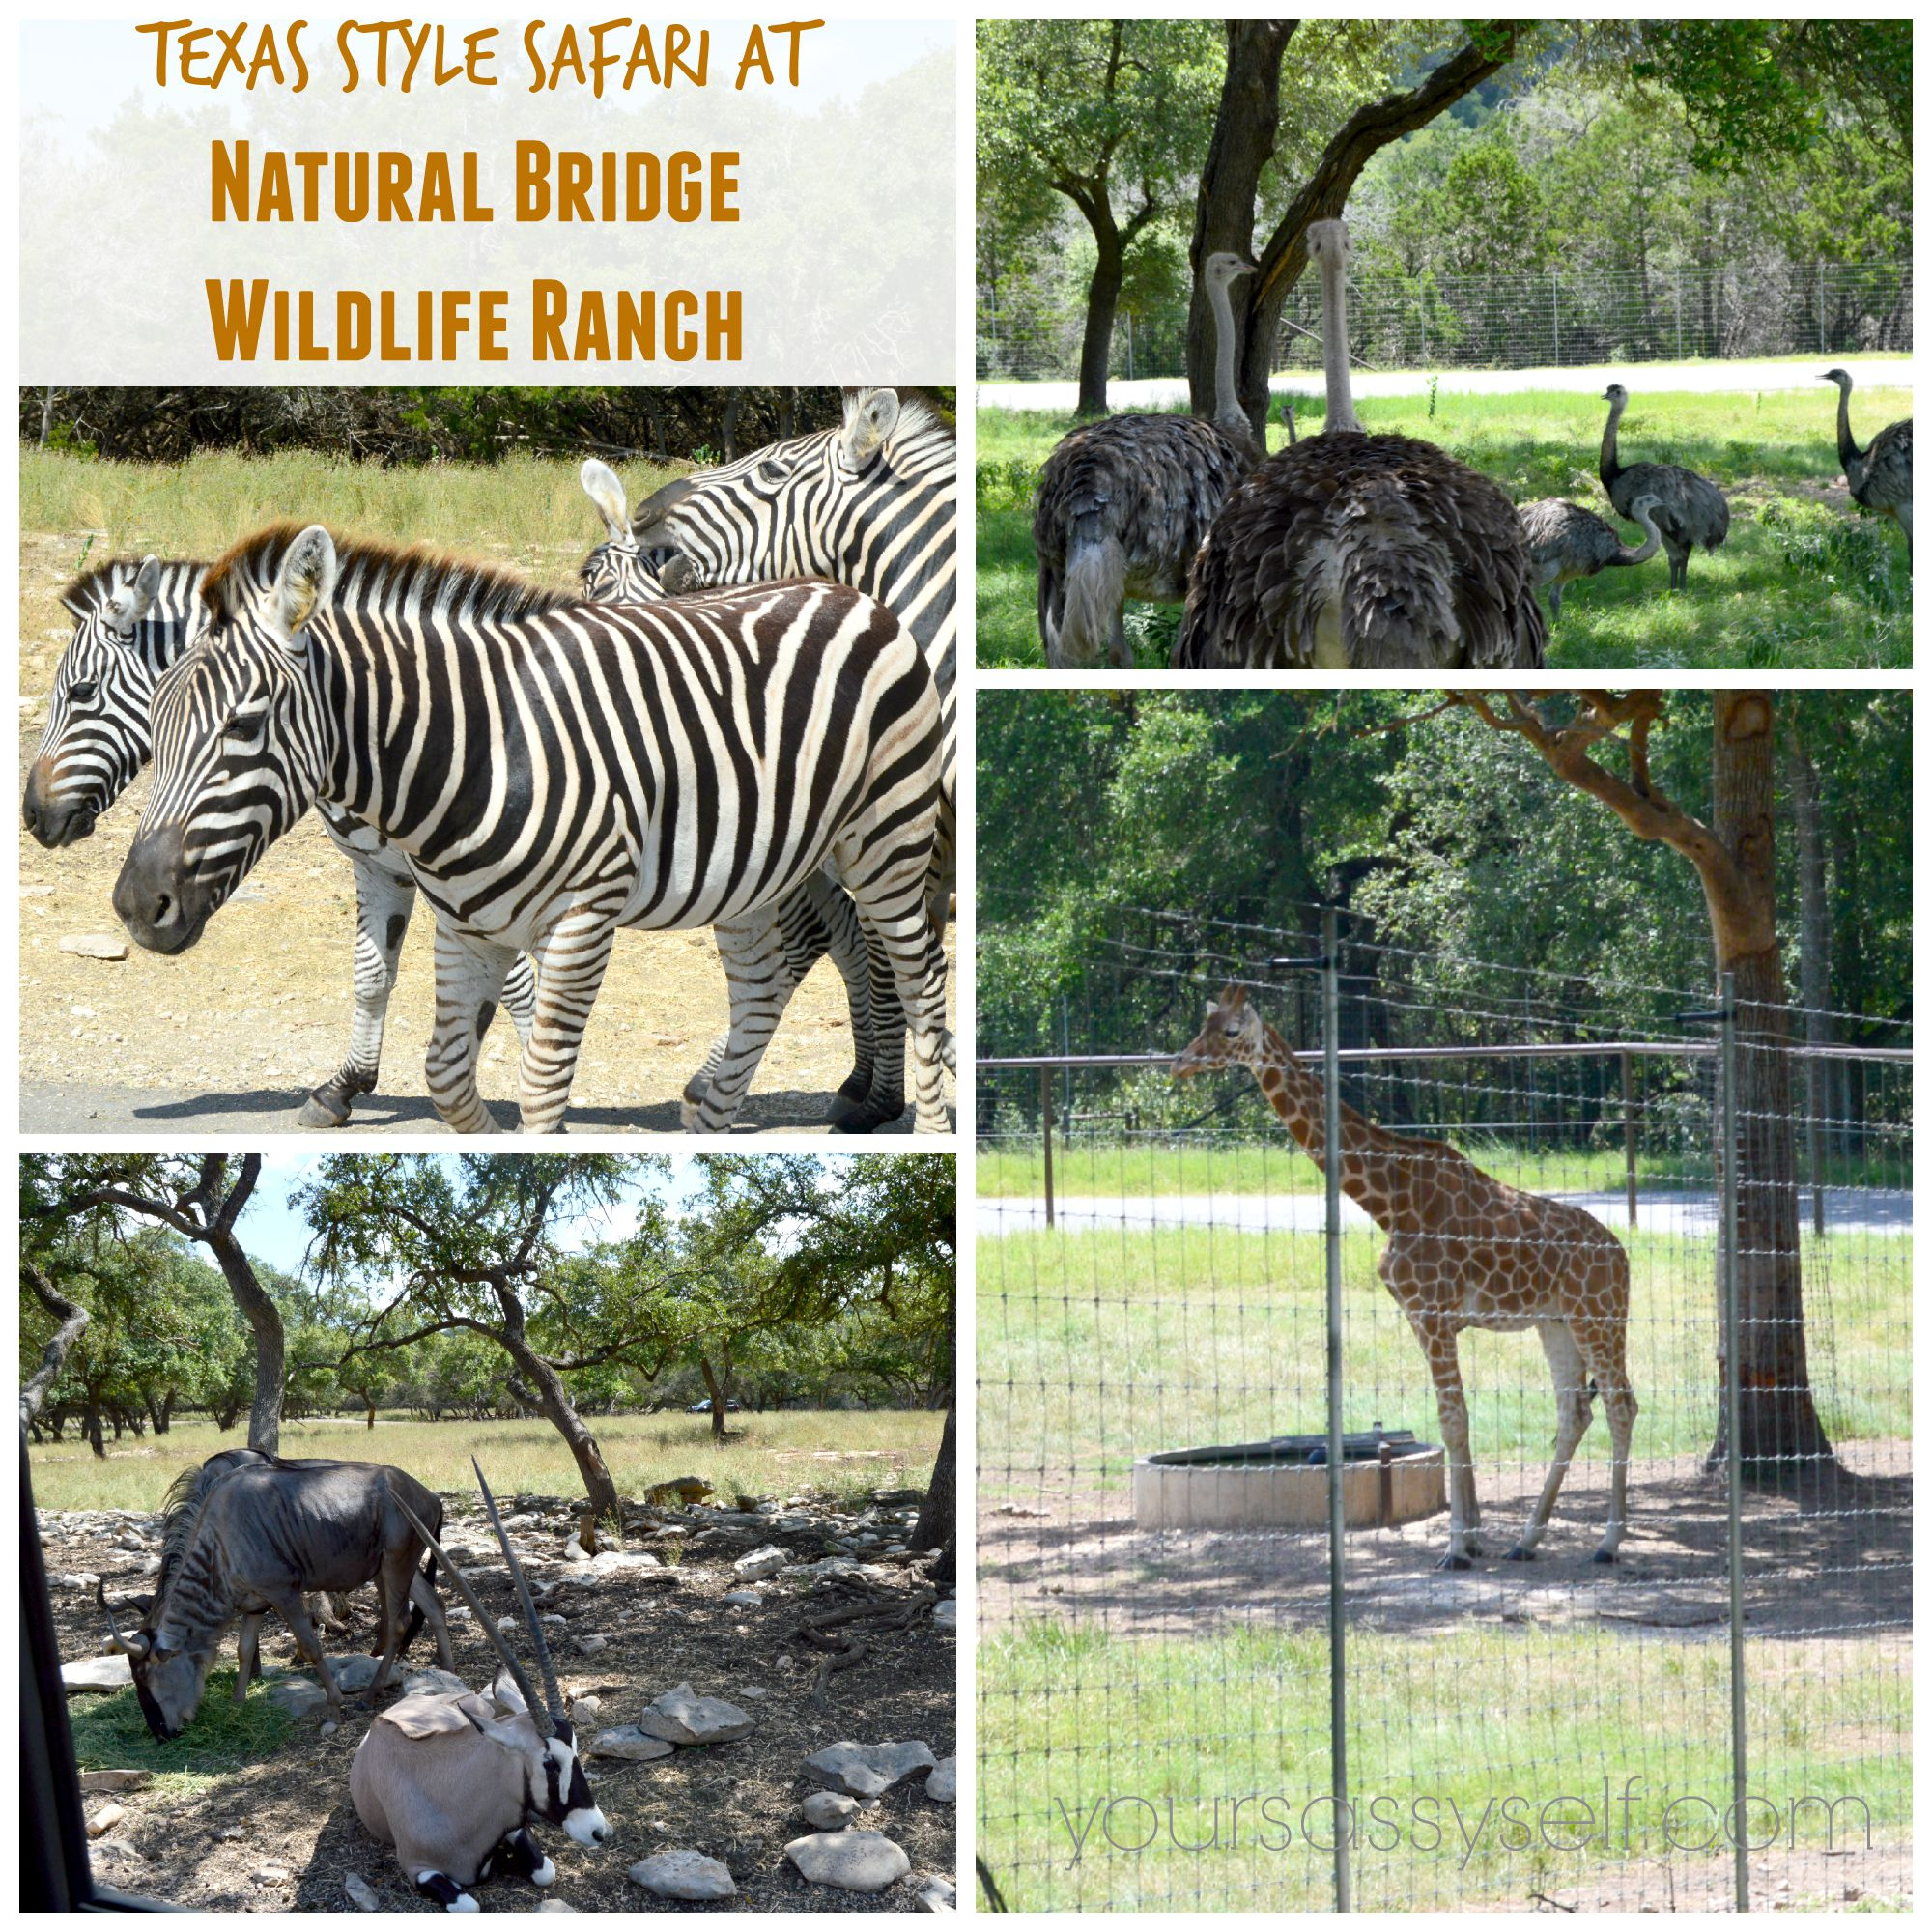 The central Texas Climate is well suited to animal survival as several of the ranchs animals have been returned to their native lands. Although our animals are wild, most are so gentle they may be hand fed from the safety of your car.